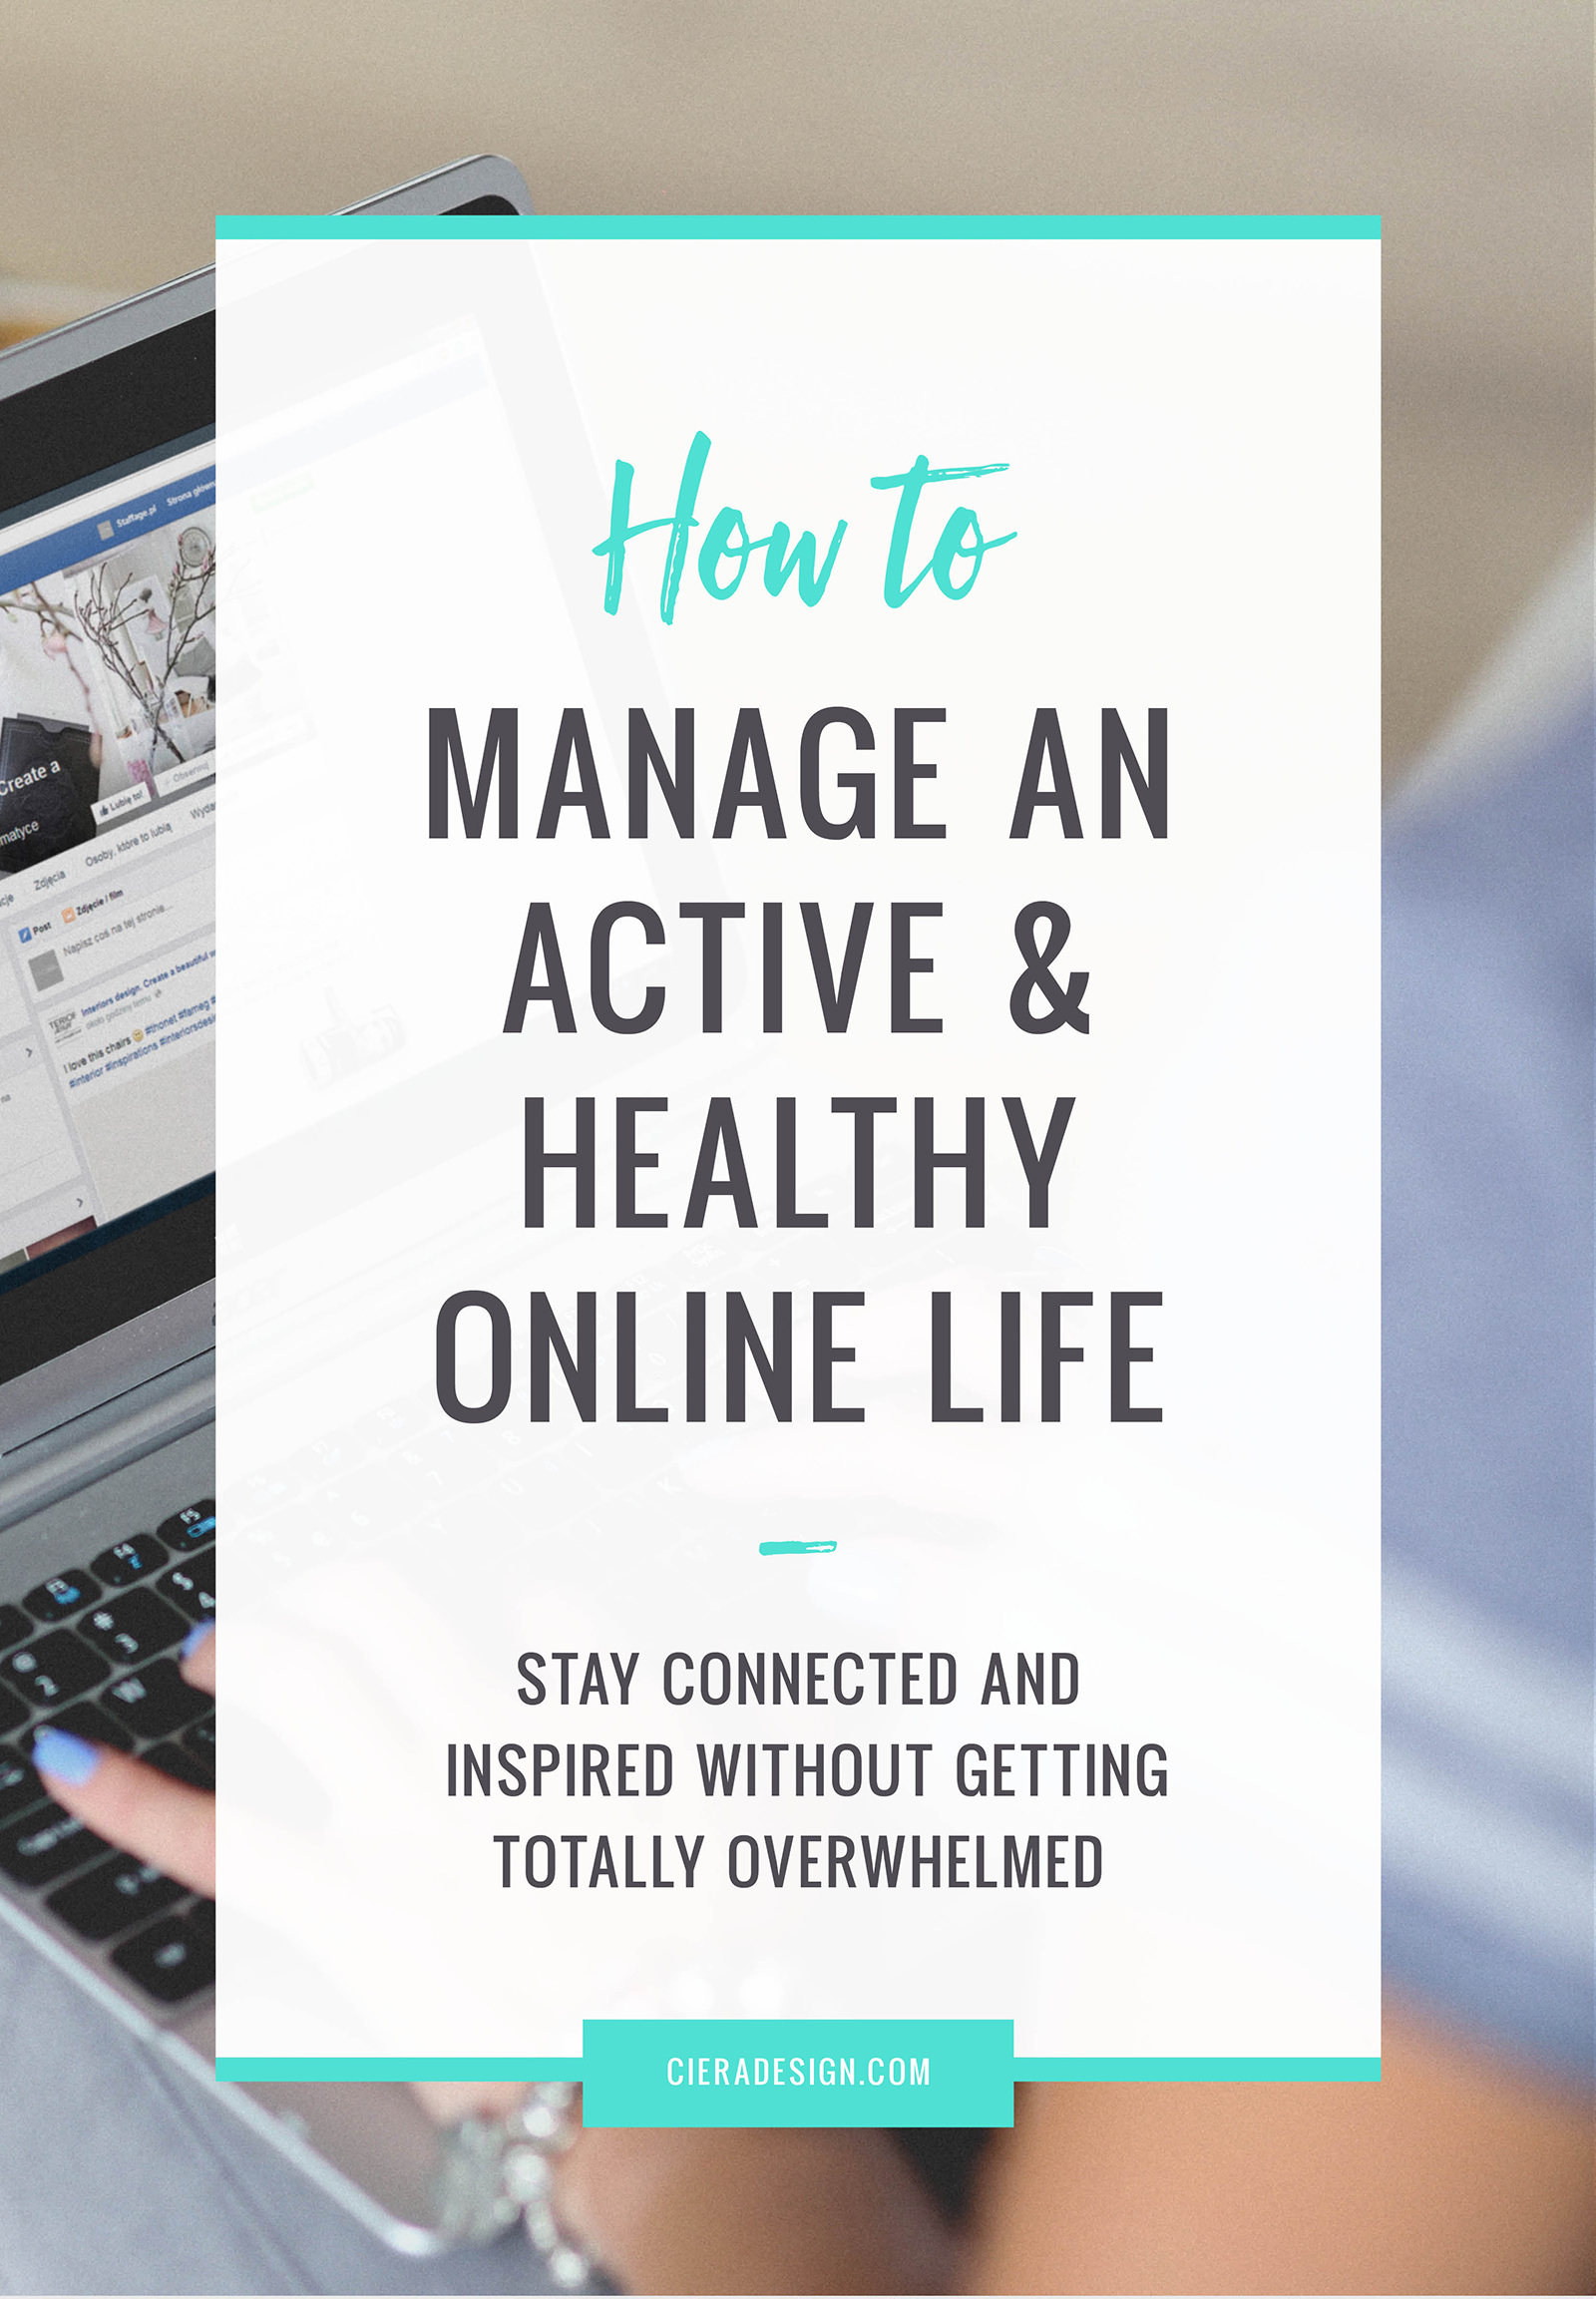 Managing an Active and Healthy Online Life - How to stay connected and inspired without getting totally overwhelmed.